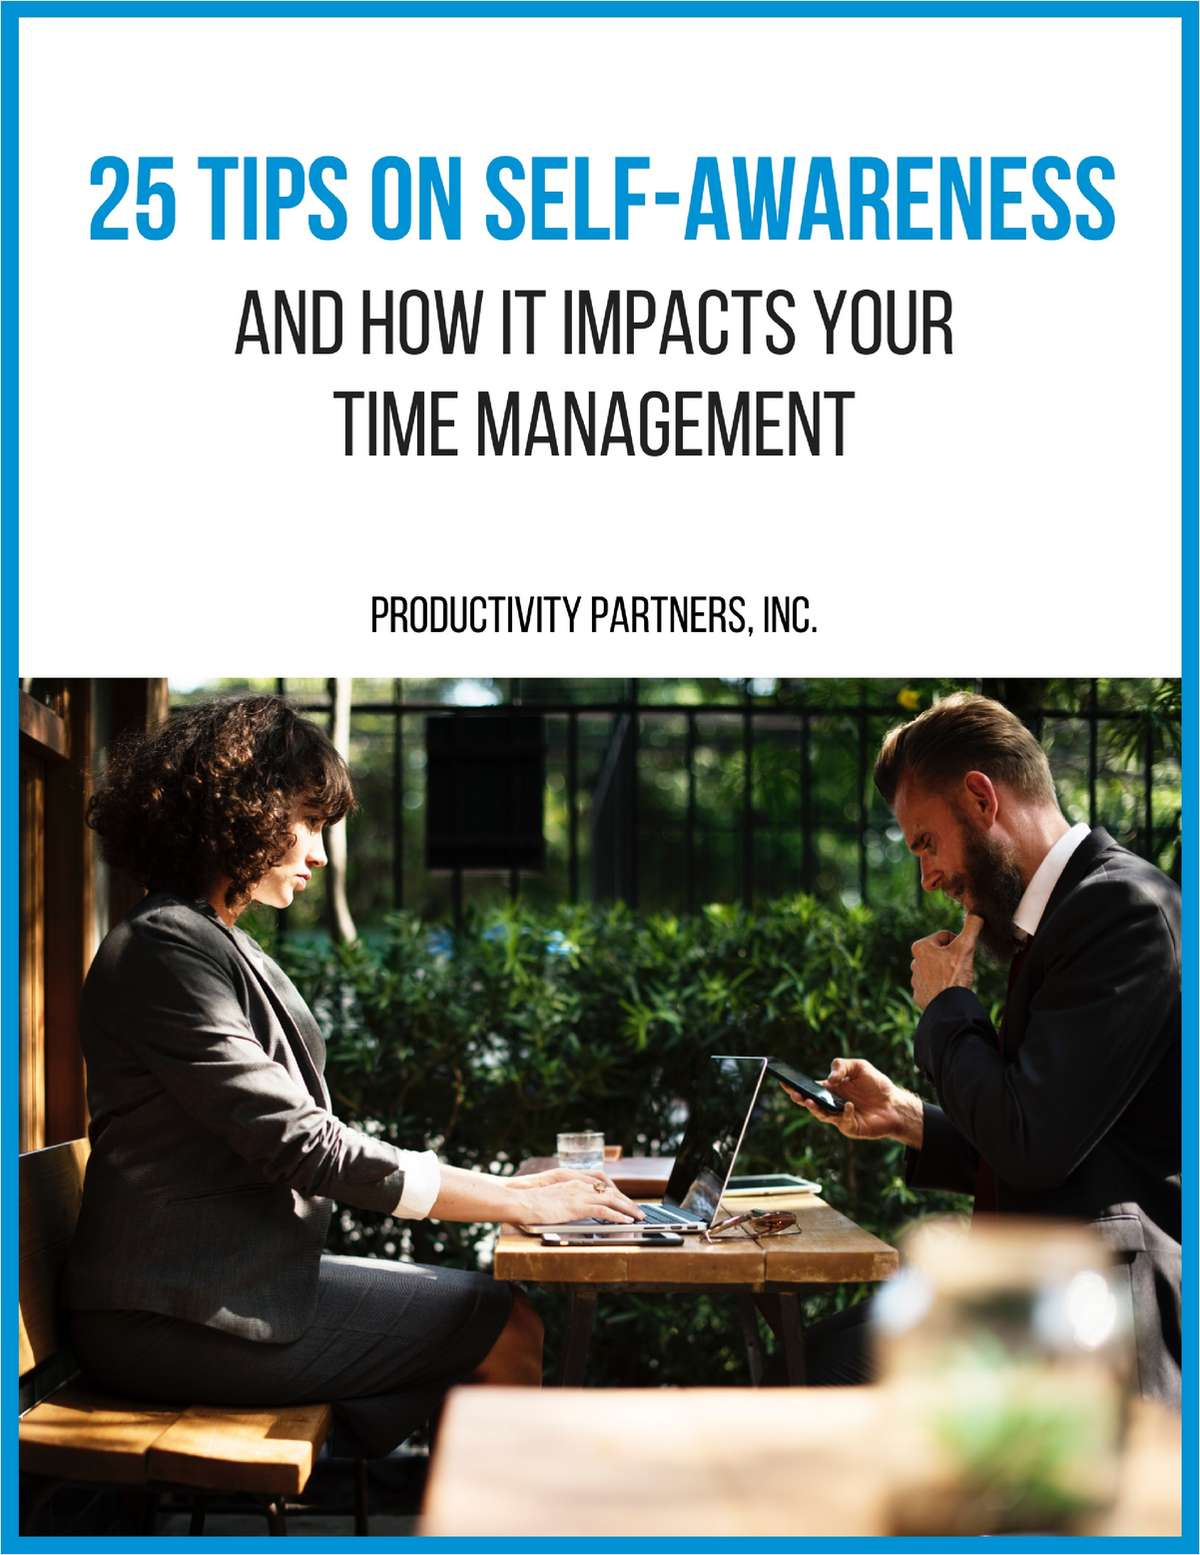 25 Tips on Self-Awareness - And How it Impacts Your Time Management